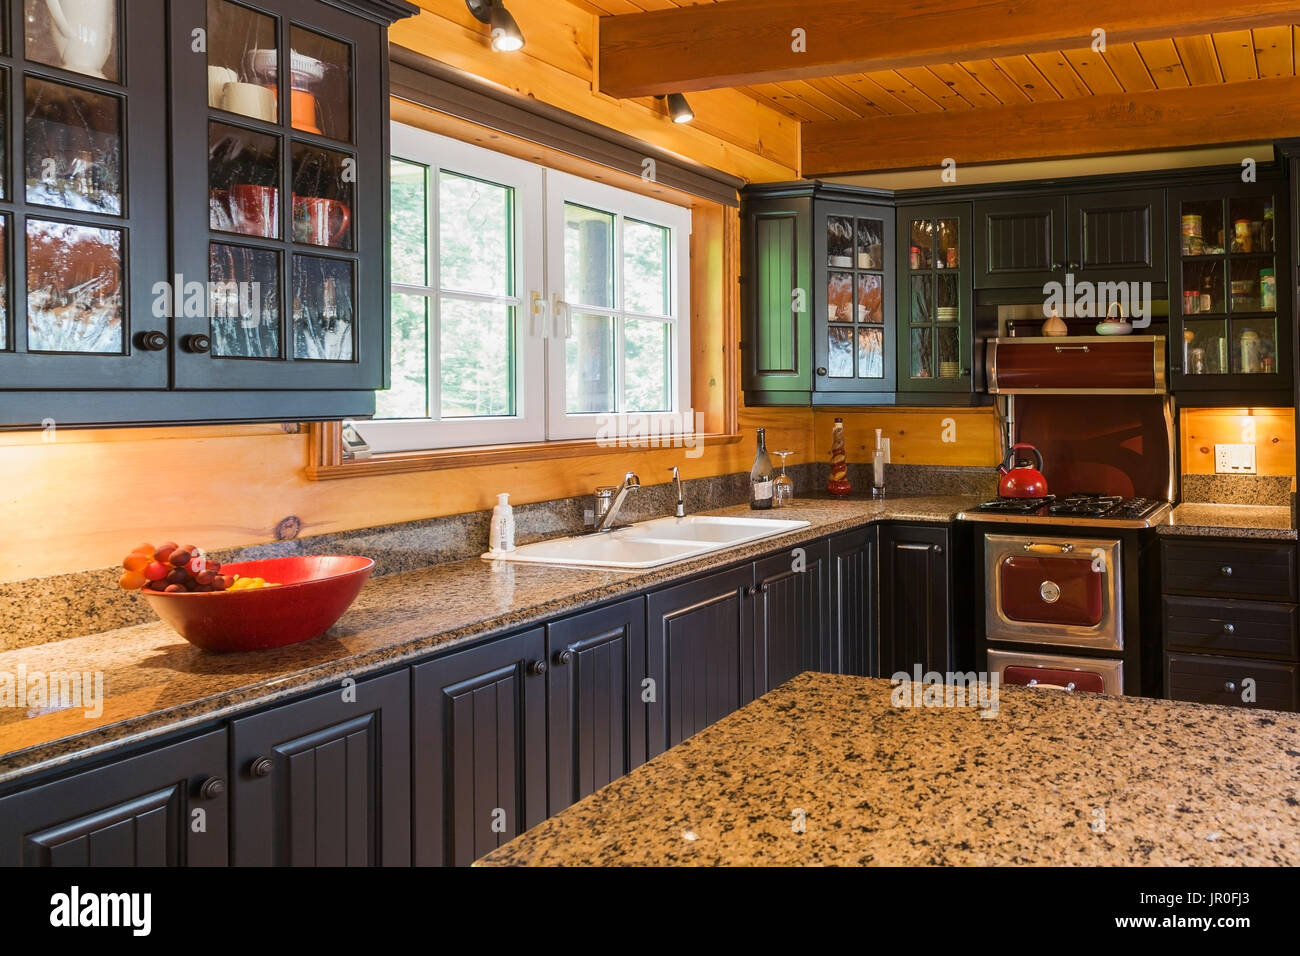 Kitchen With Black Wooden Cabinets Antique Cooking Stove And Granite Stock Photo Alamy